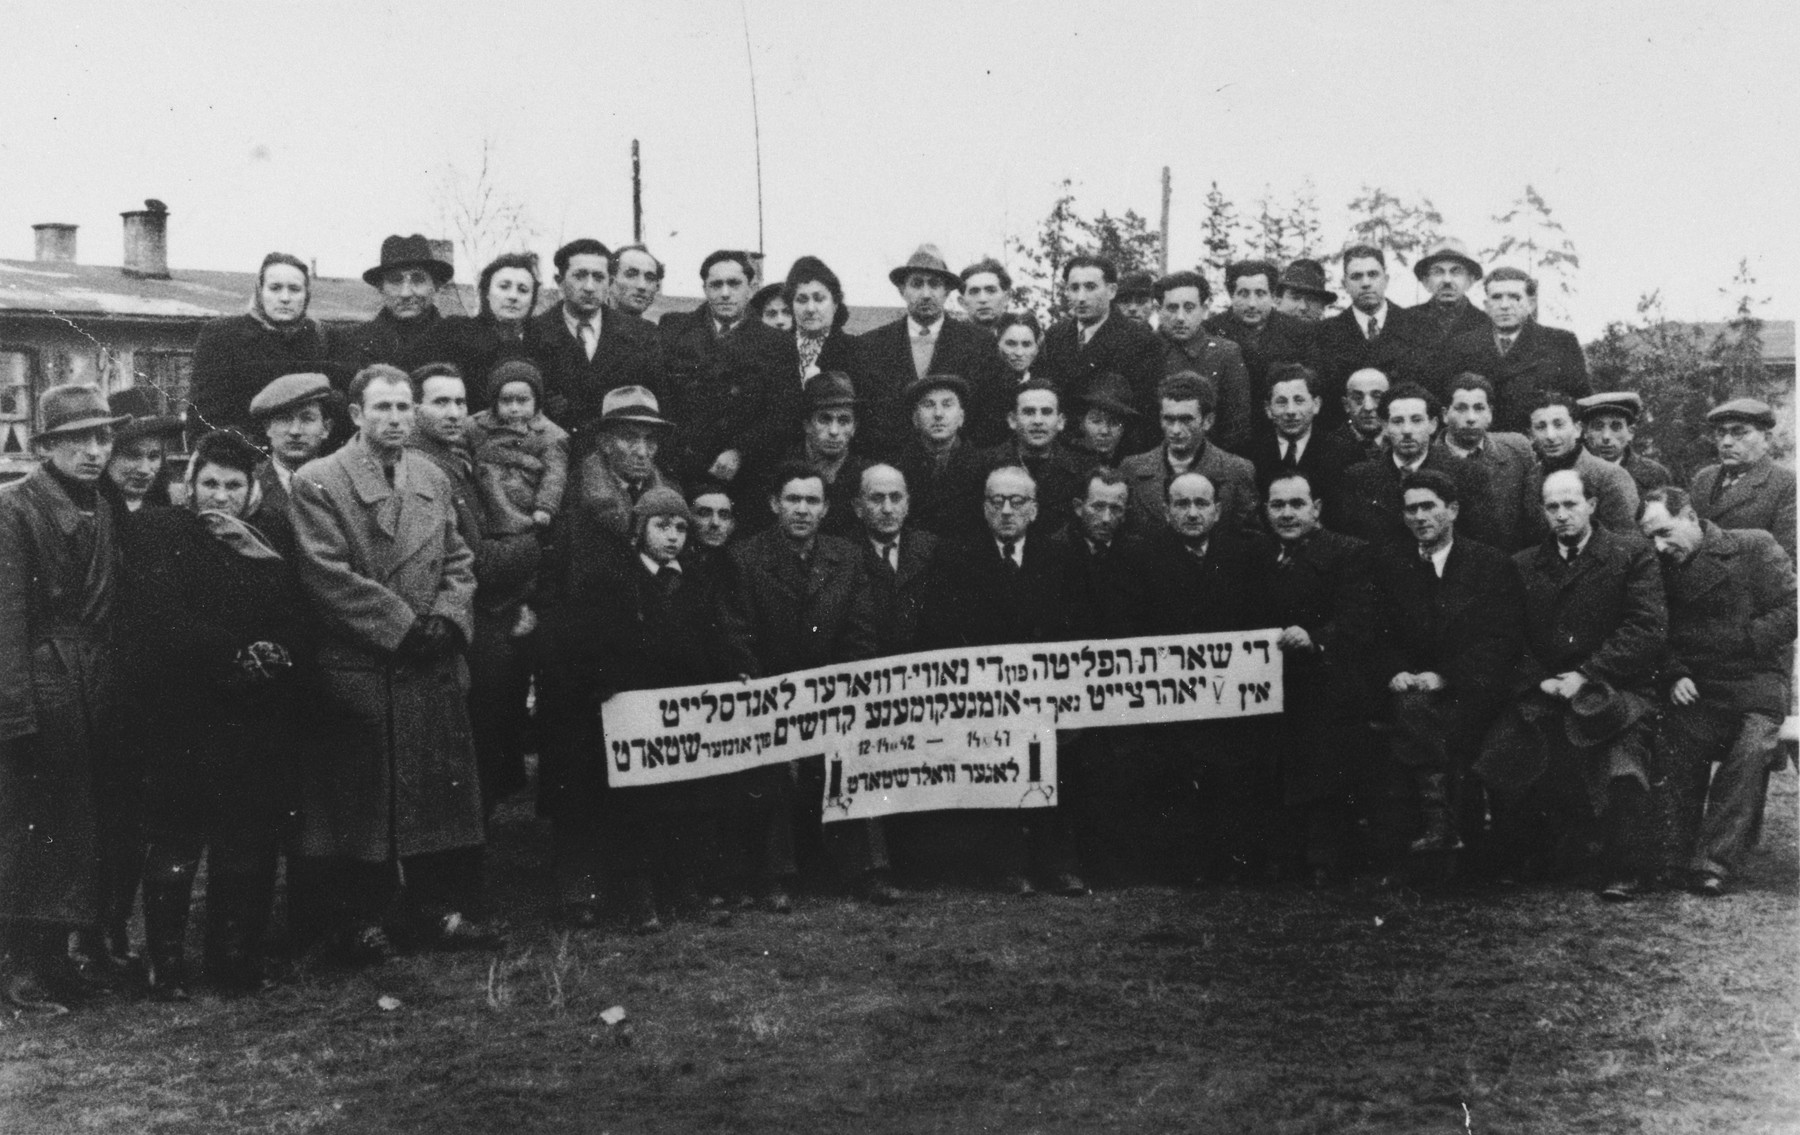 Group portrait of survivors at a commemoration of the destruction of the Jewish community of Nowy Dwor by the Nazis.  The commemoration took place at the Pocking displaced persons camp.  Pictured in the first row, fifth from the right is Iser Knecht.